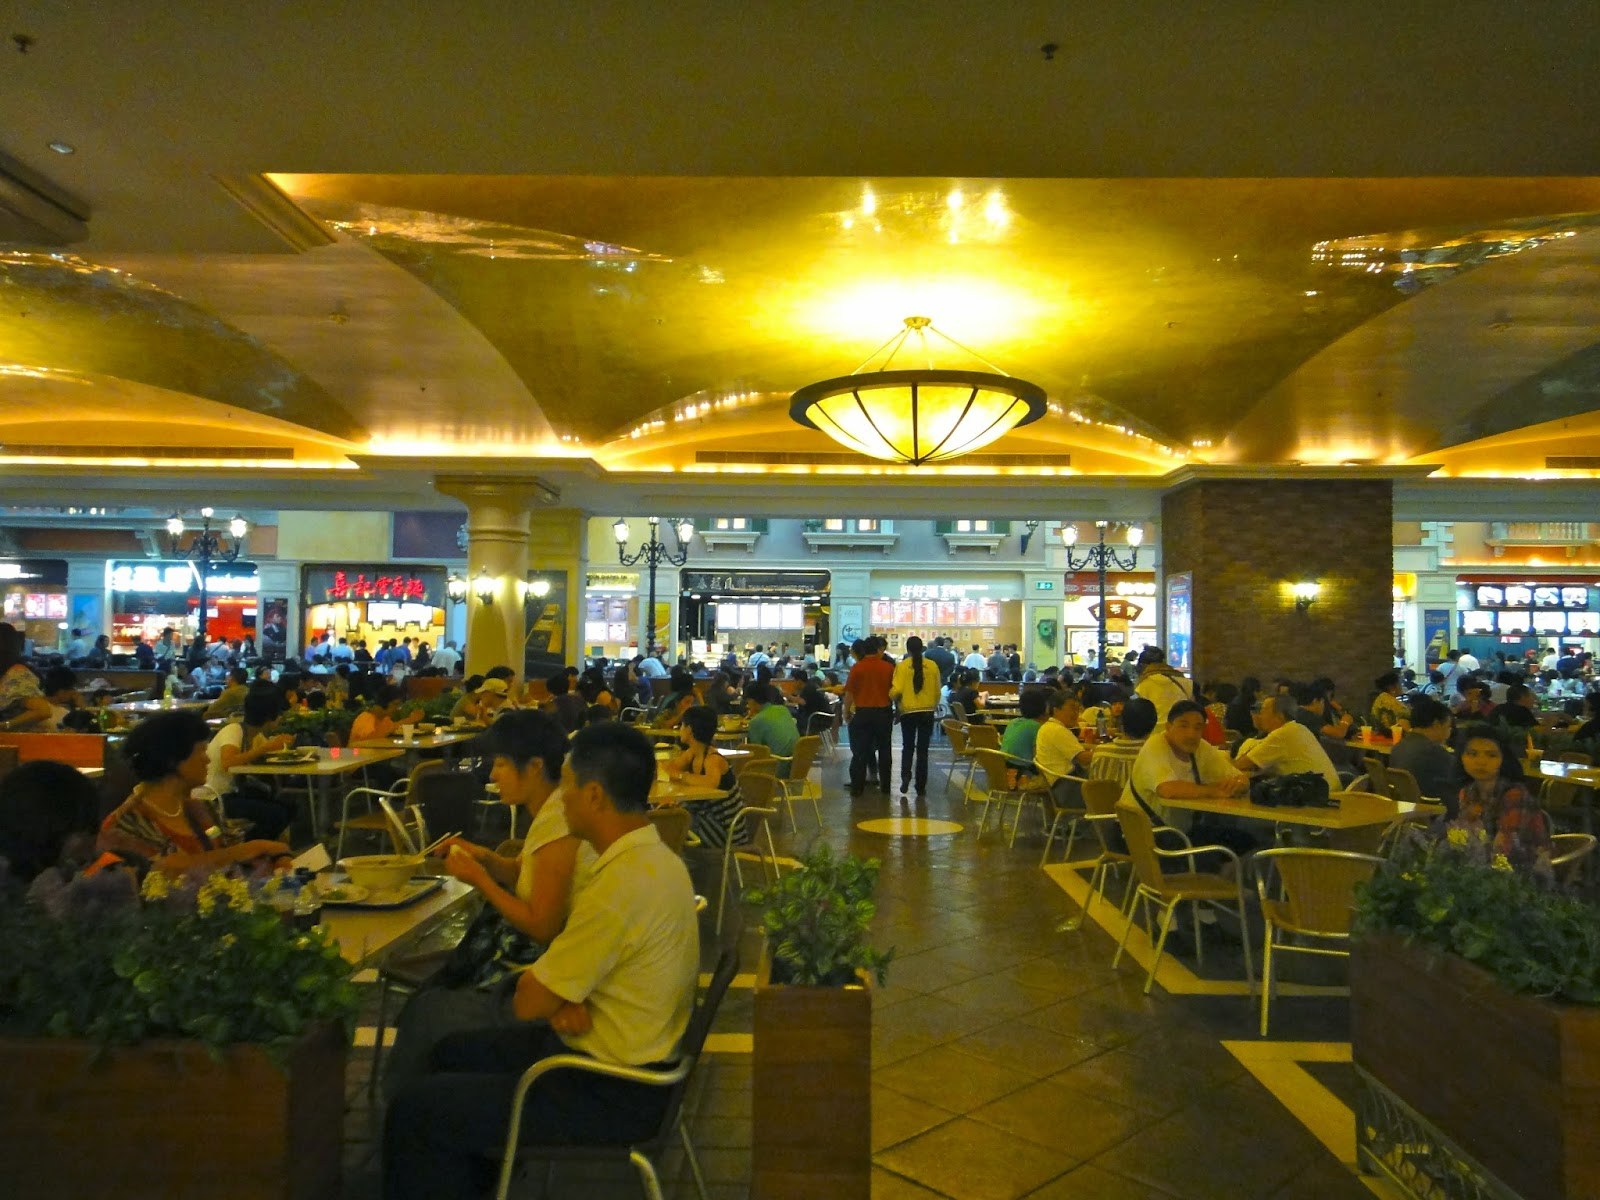 Food Court at the Venetian Macao